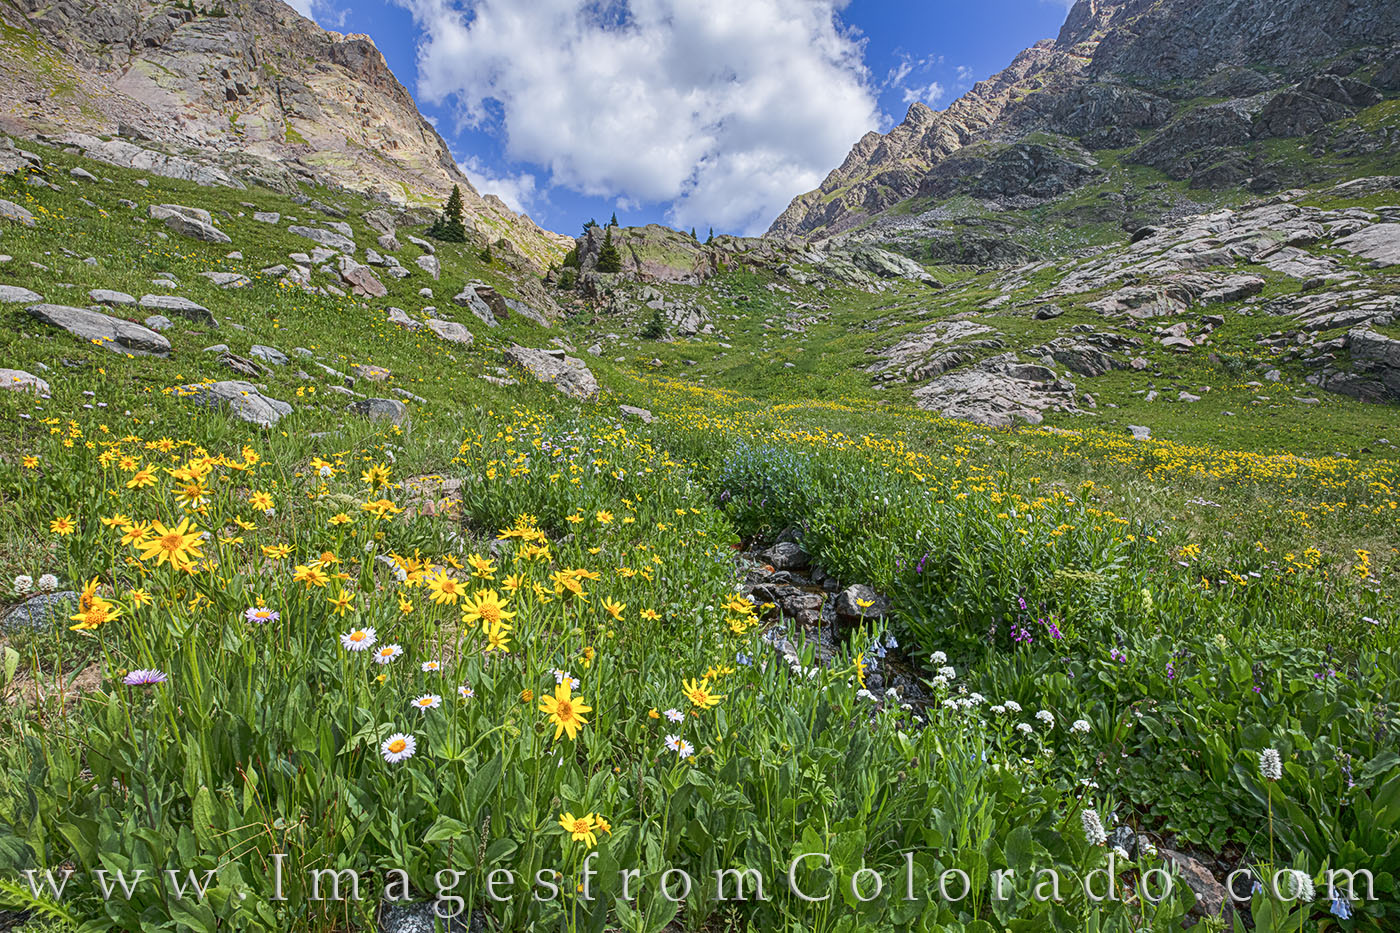 colorado wildflowers, vail, summit county, upper piney lake, upper piney lake trail, upper piney trail, aster, alpine, sunflower, hiking, wildflowers, summer, july, photo